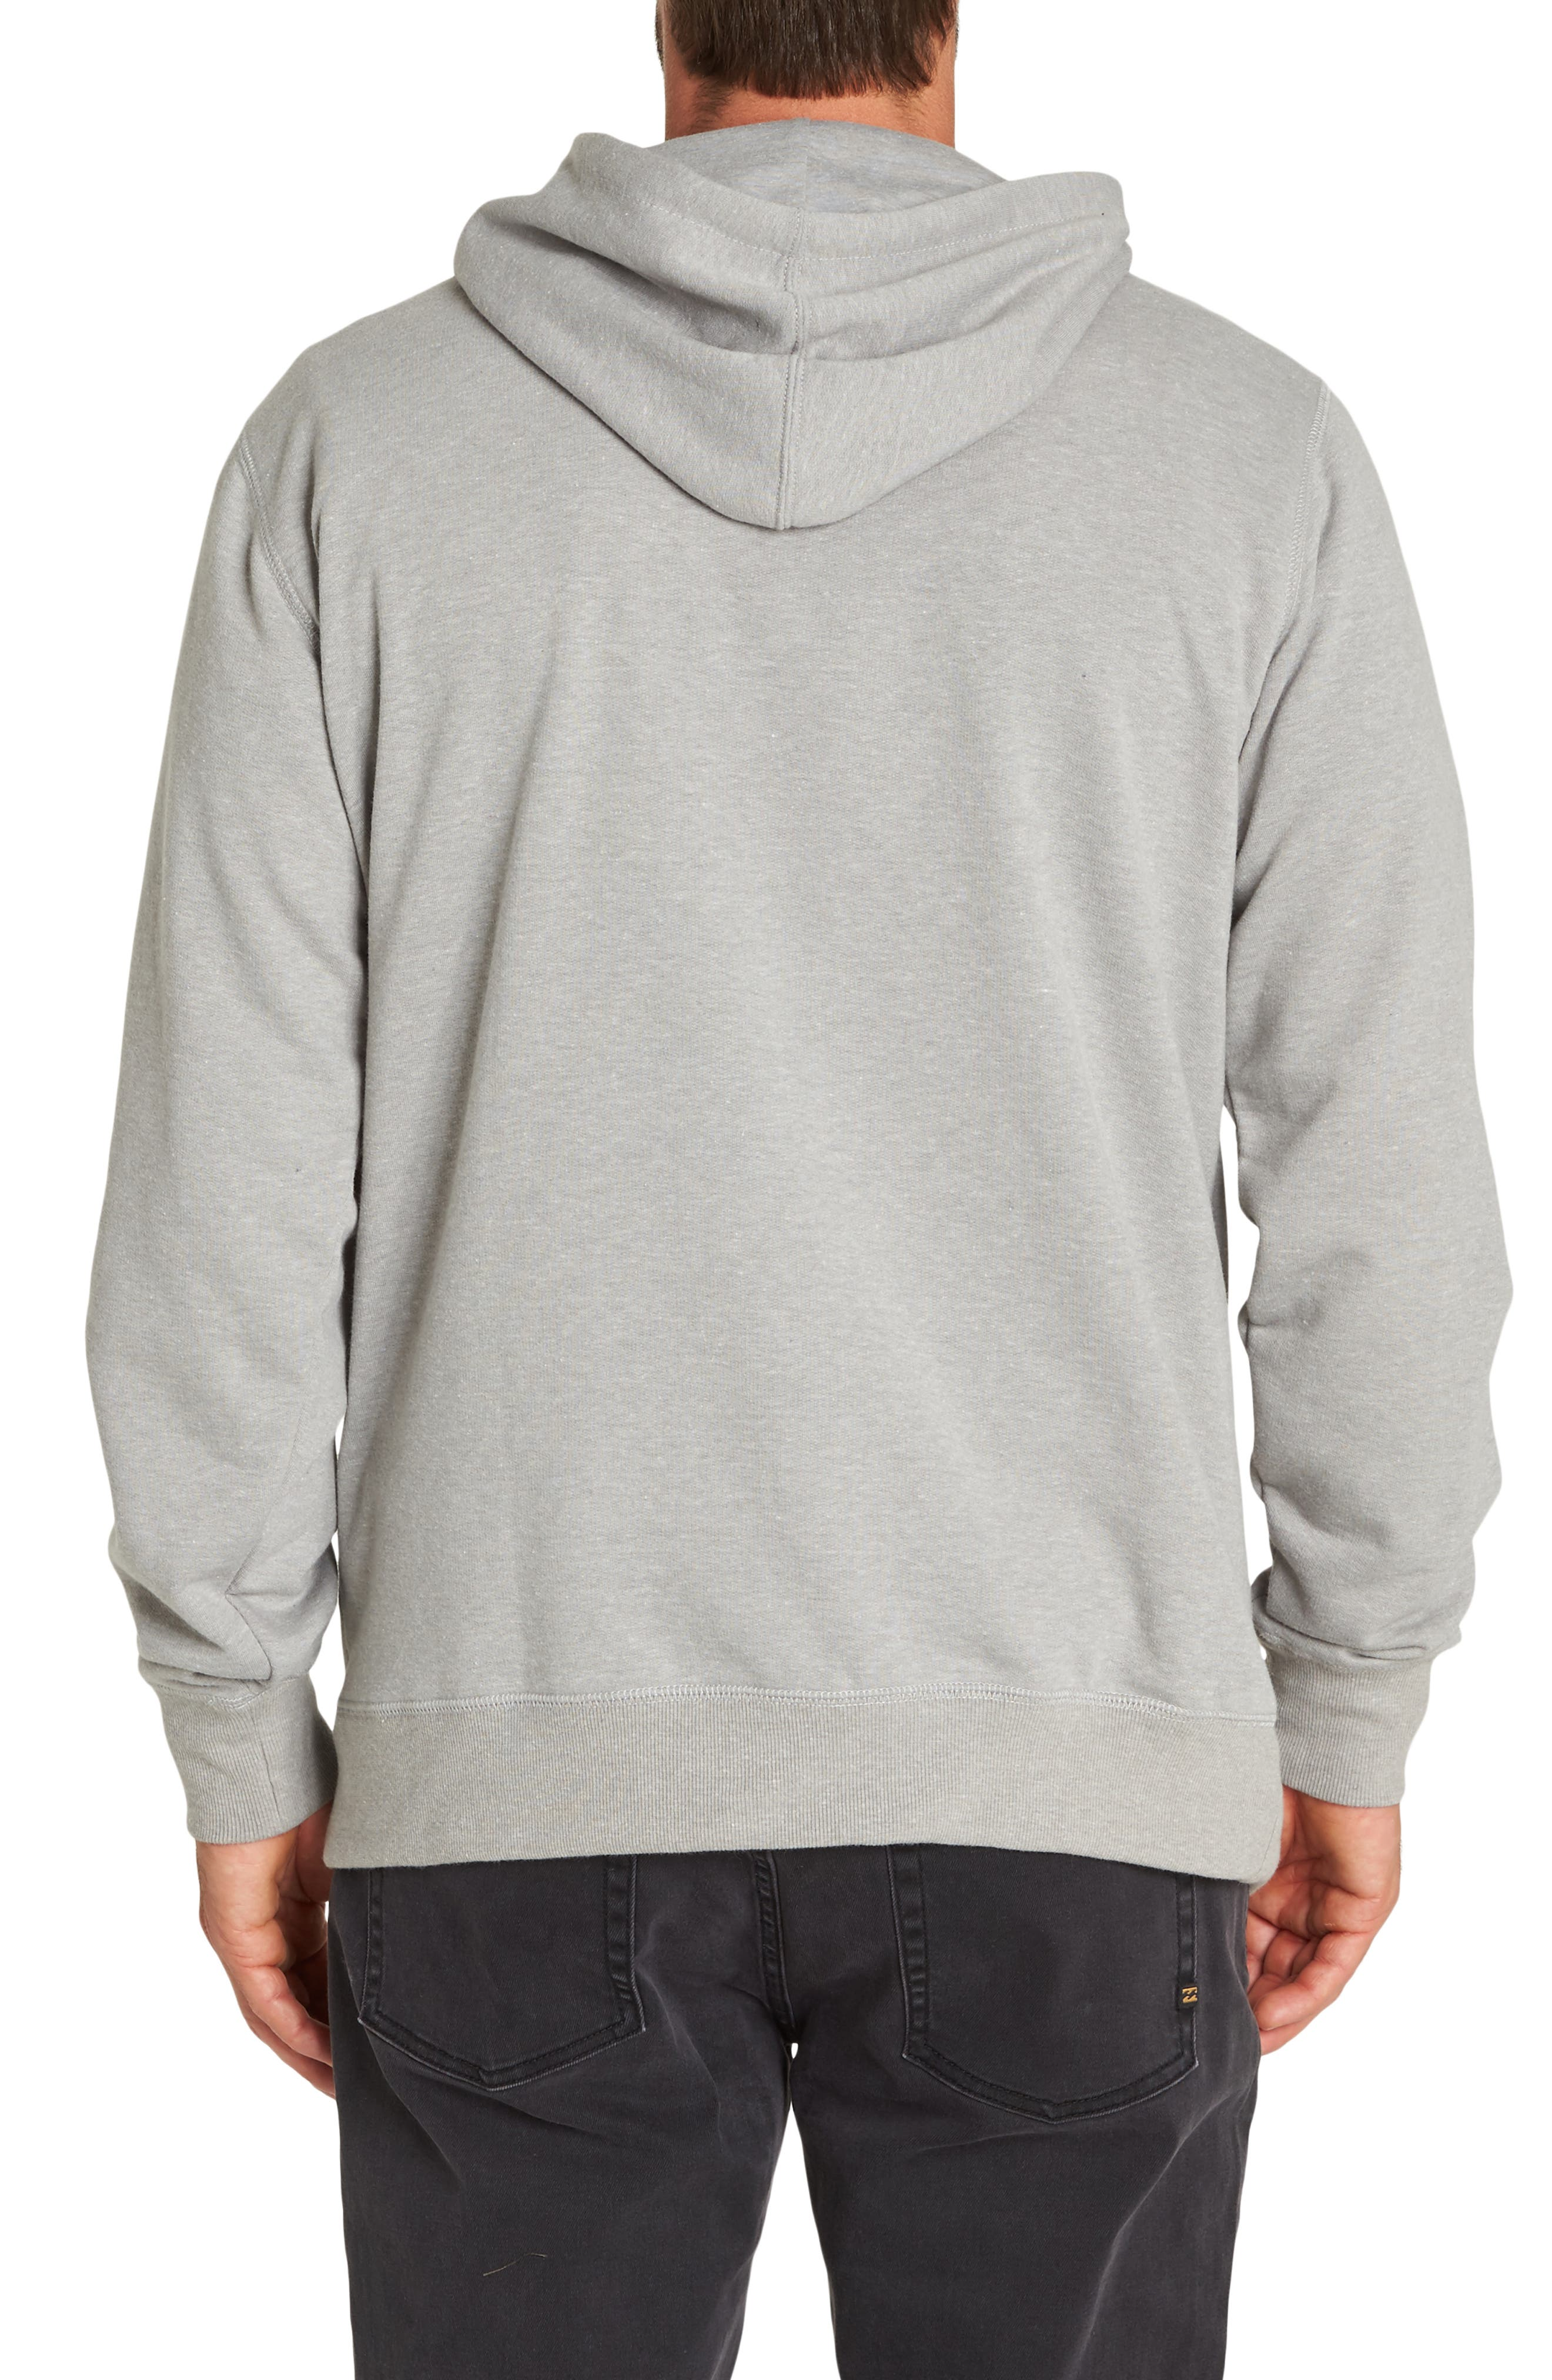 All Day Hoodie,                             Alternate thumbnail 2, color,                             GREY